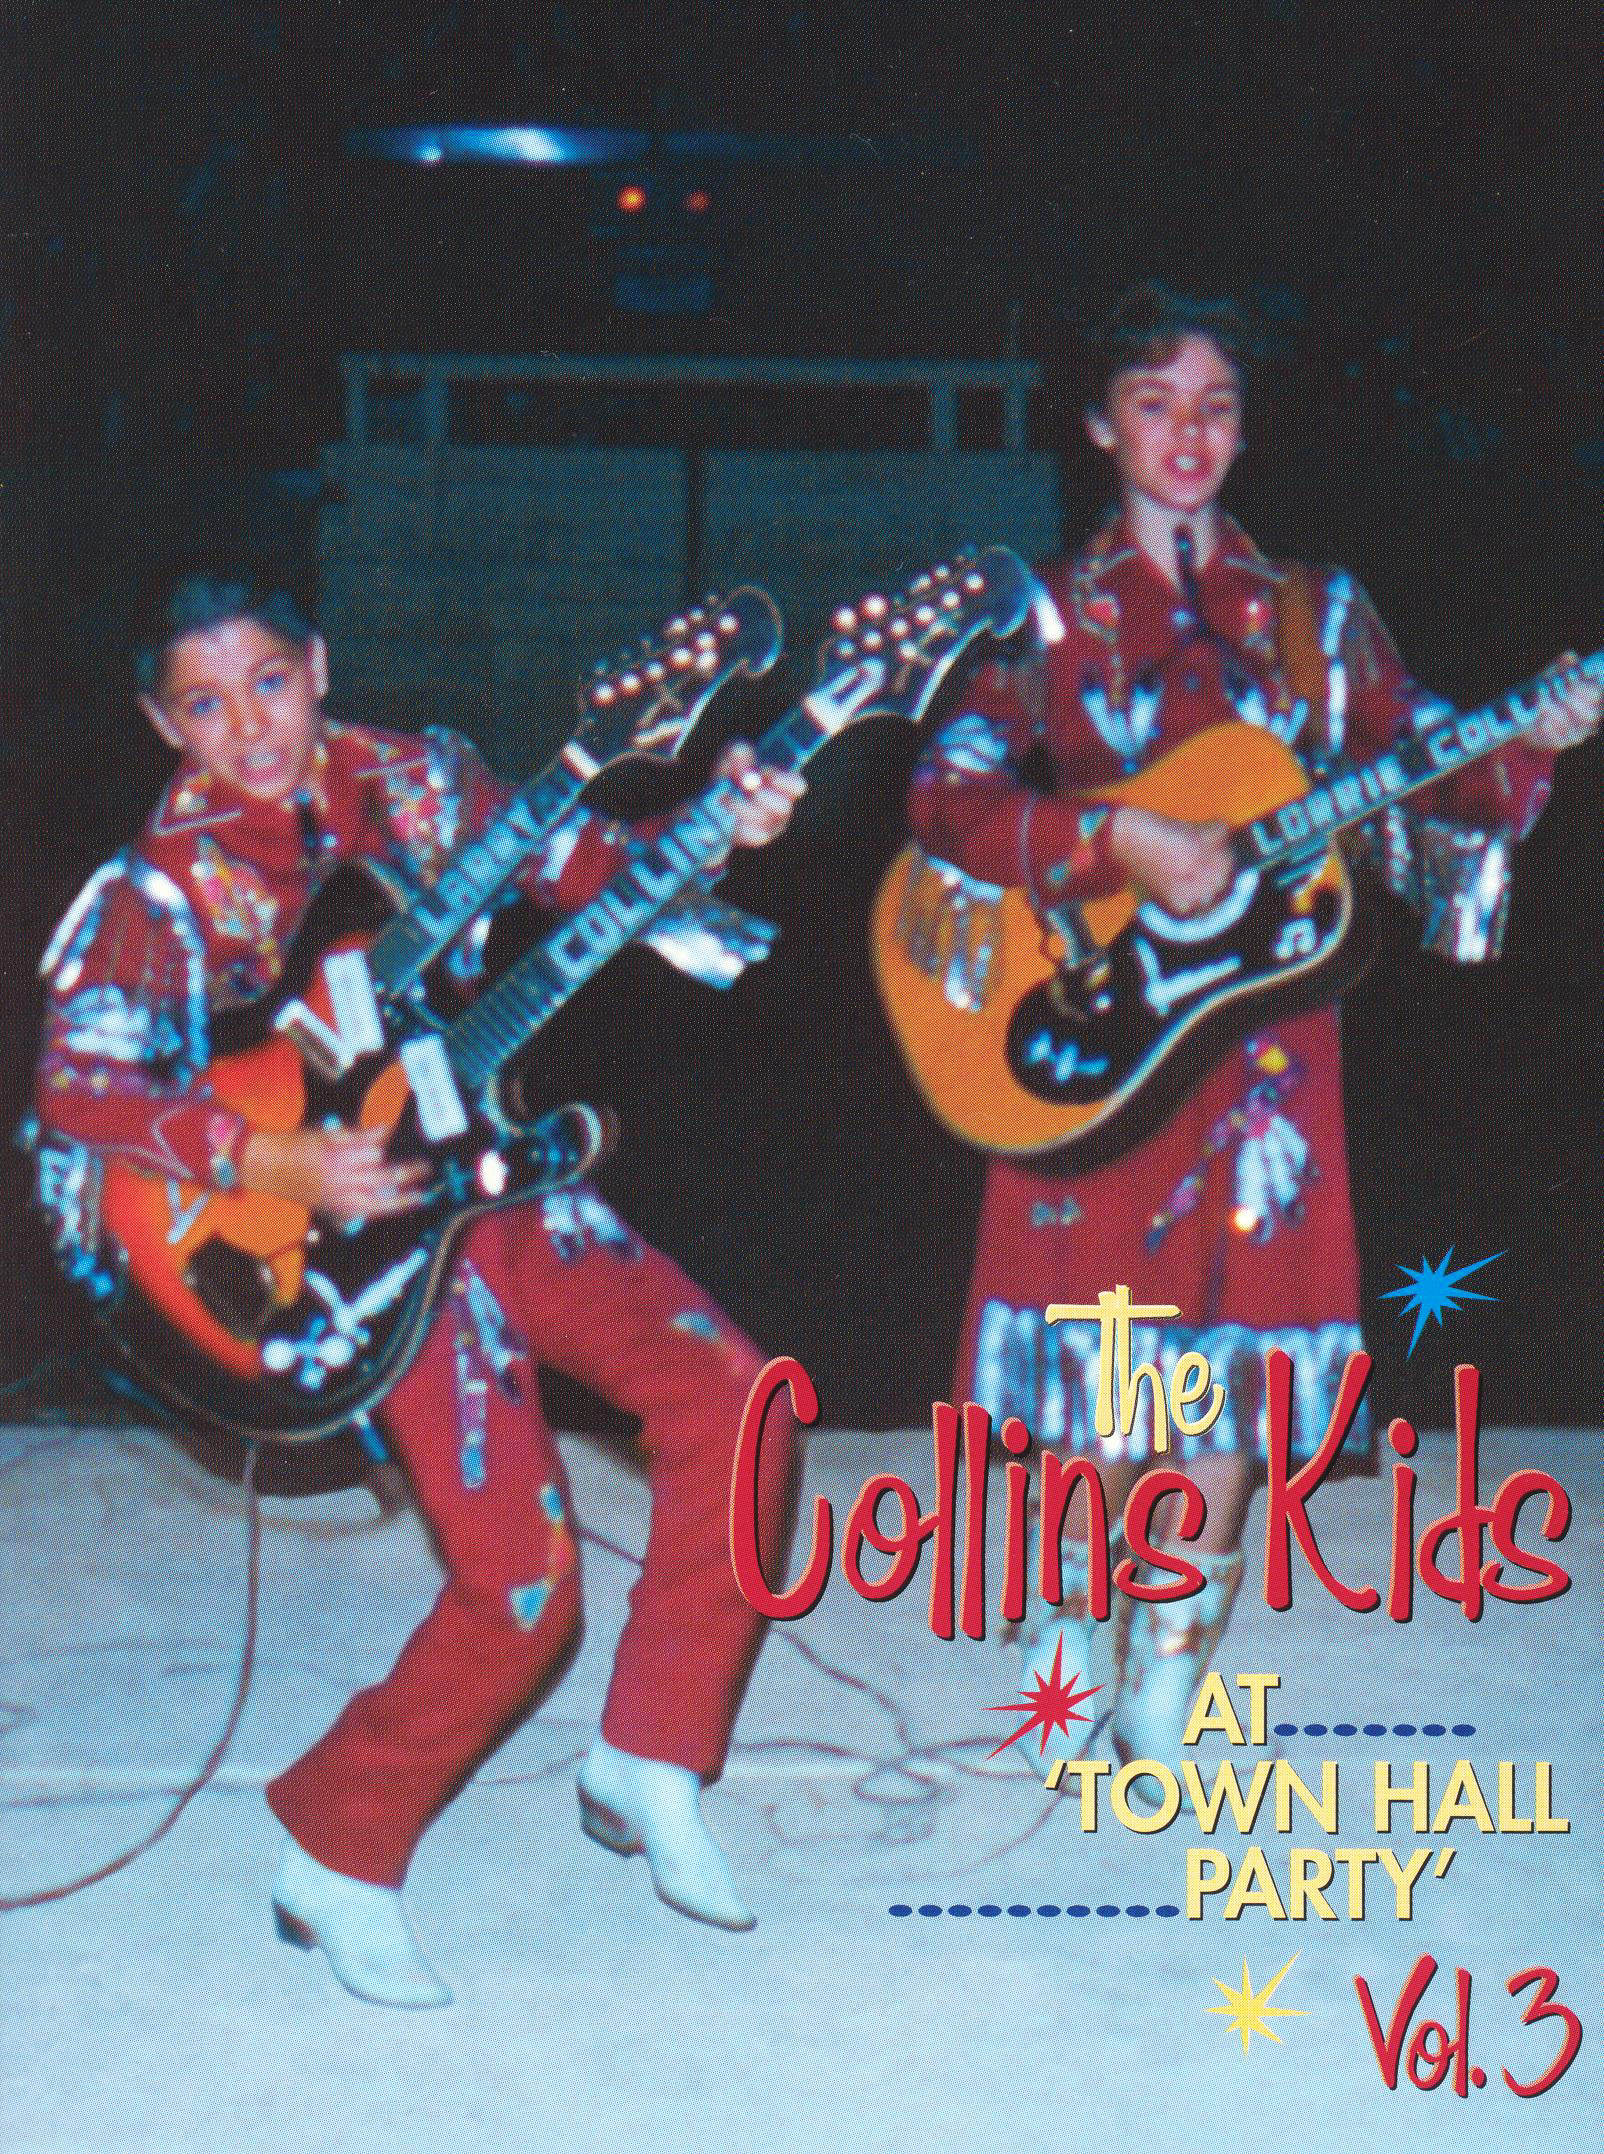 The Collins Kids At Town Hall Party, Vol. 3